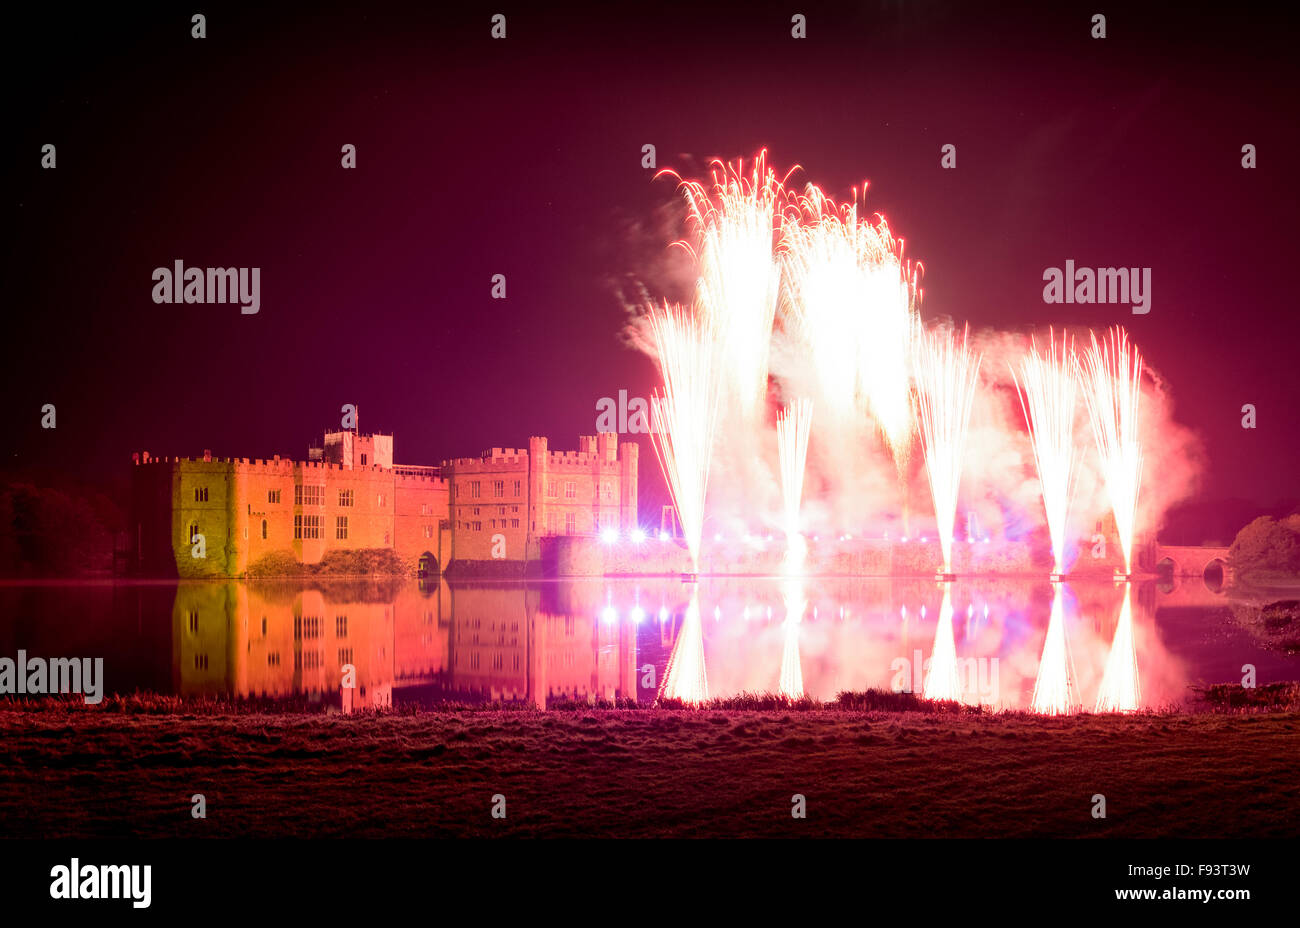 Le rapport annuel d'artifice au château de Leeds, Maidstone, Kent, UK. Photo Stock